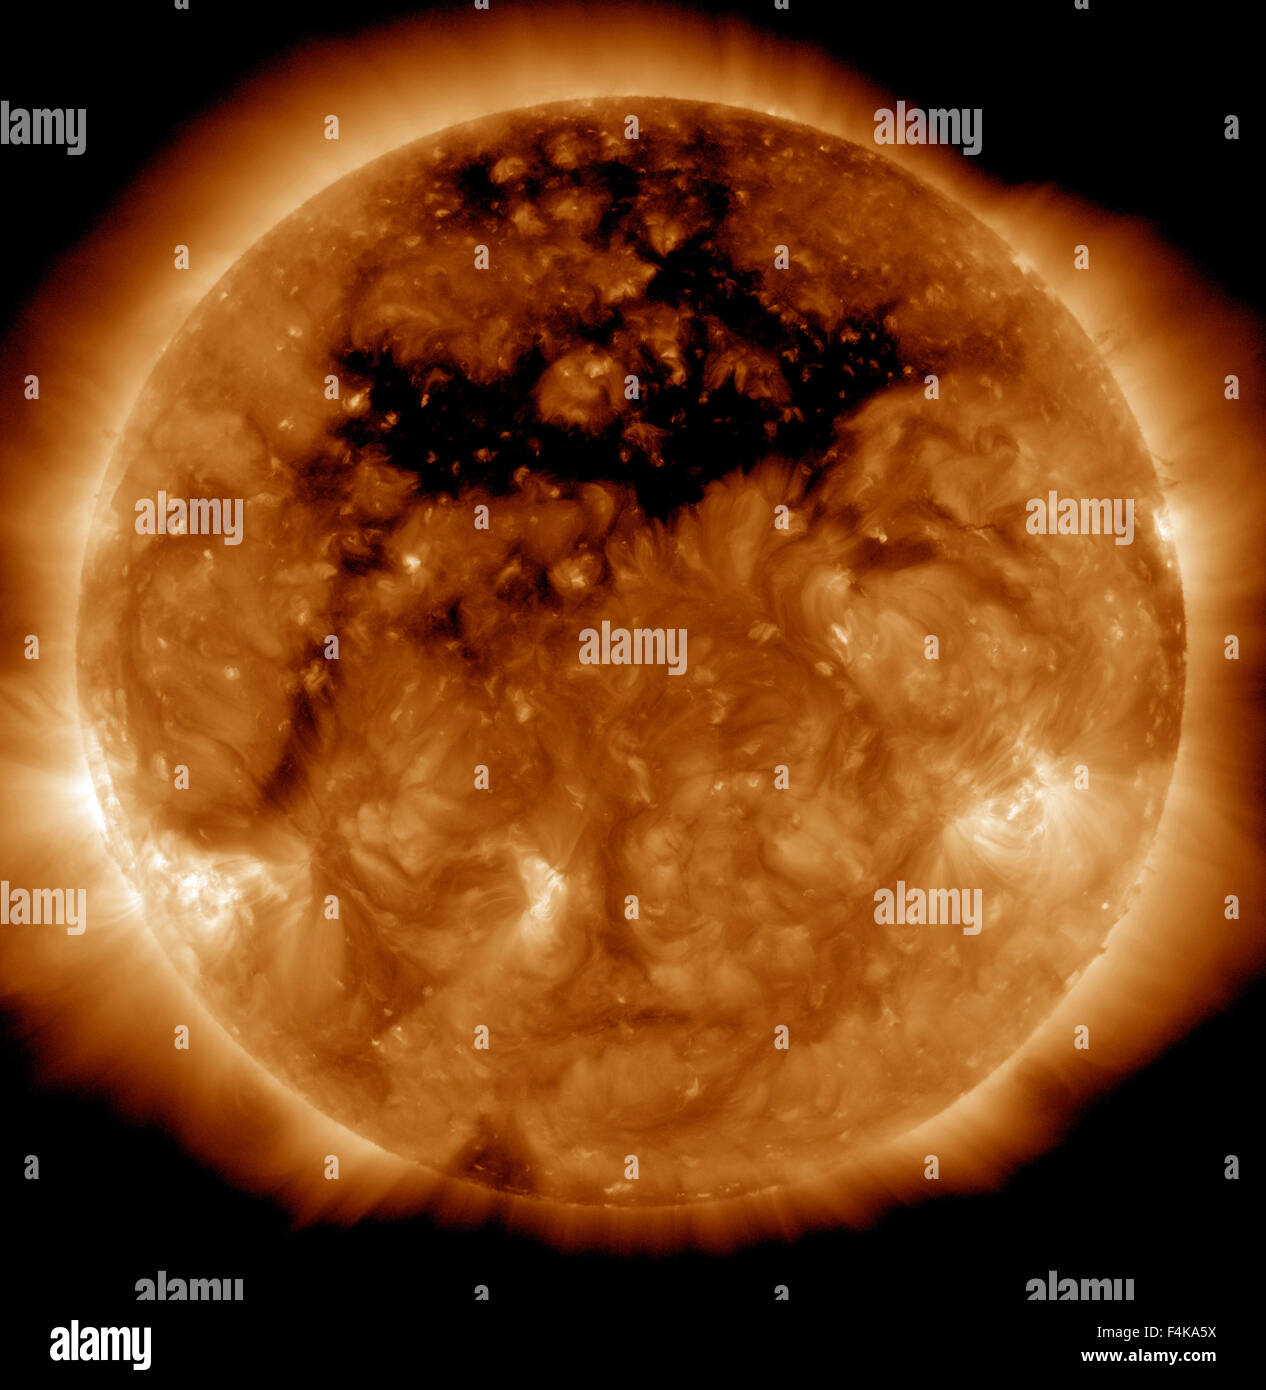 A coronal hole, the dark area across the top of the sun where a region on the sun's magnetic field is open to - Stock Image